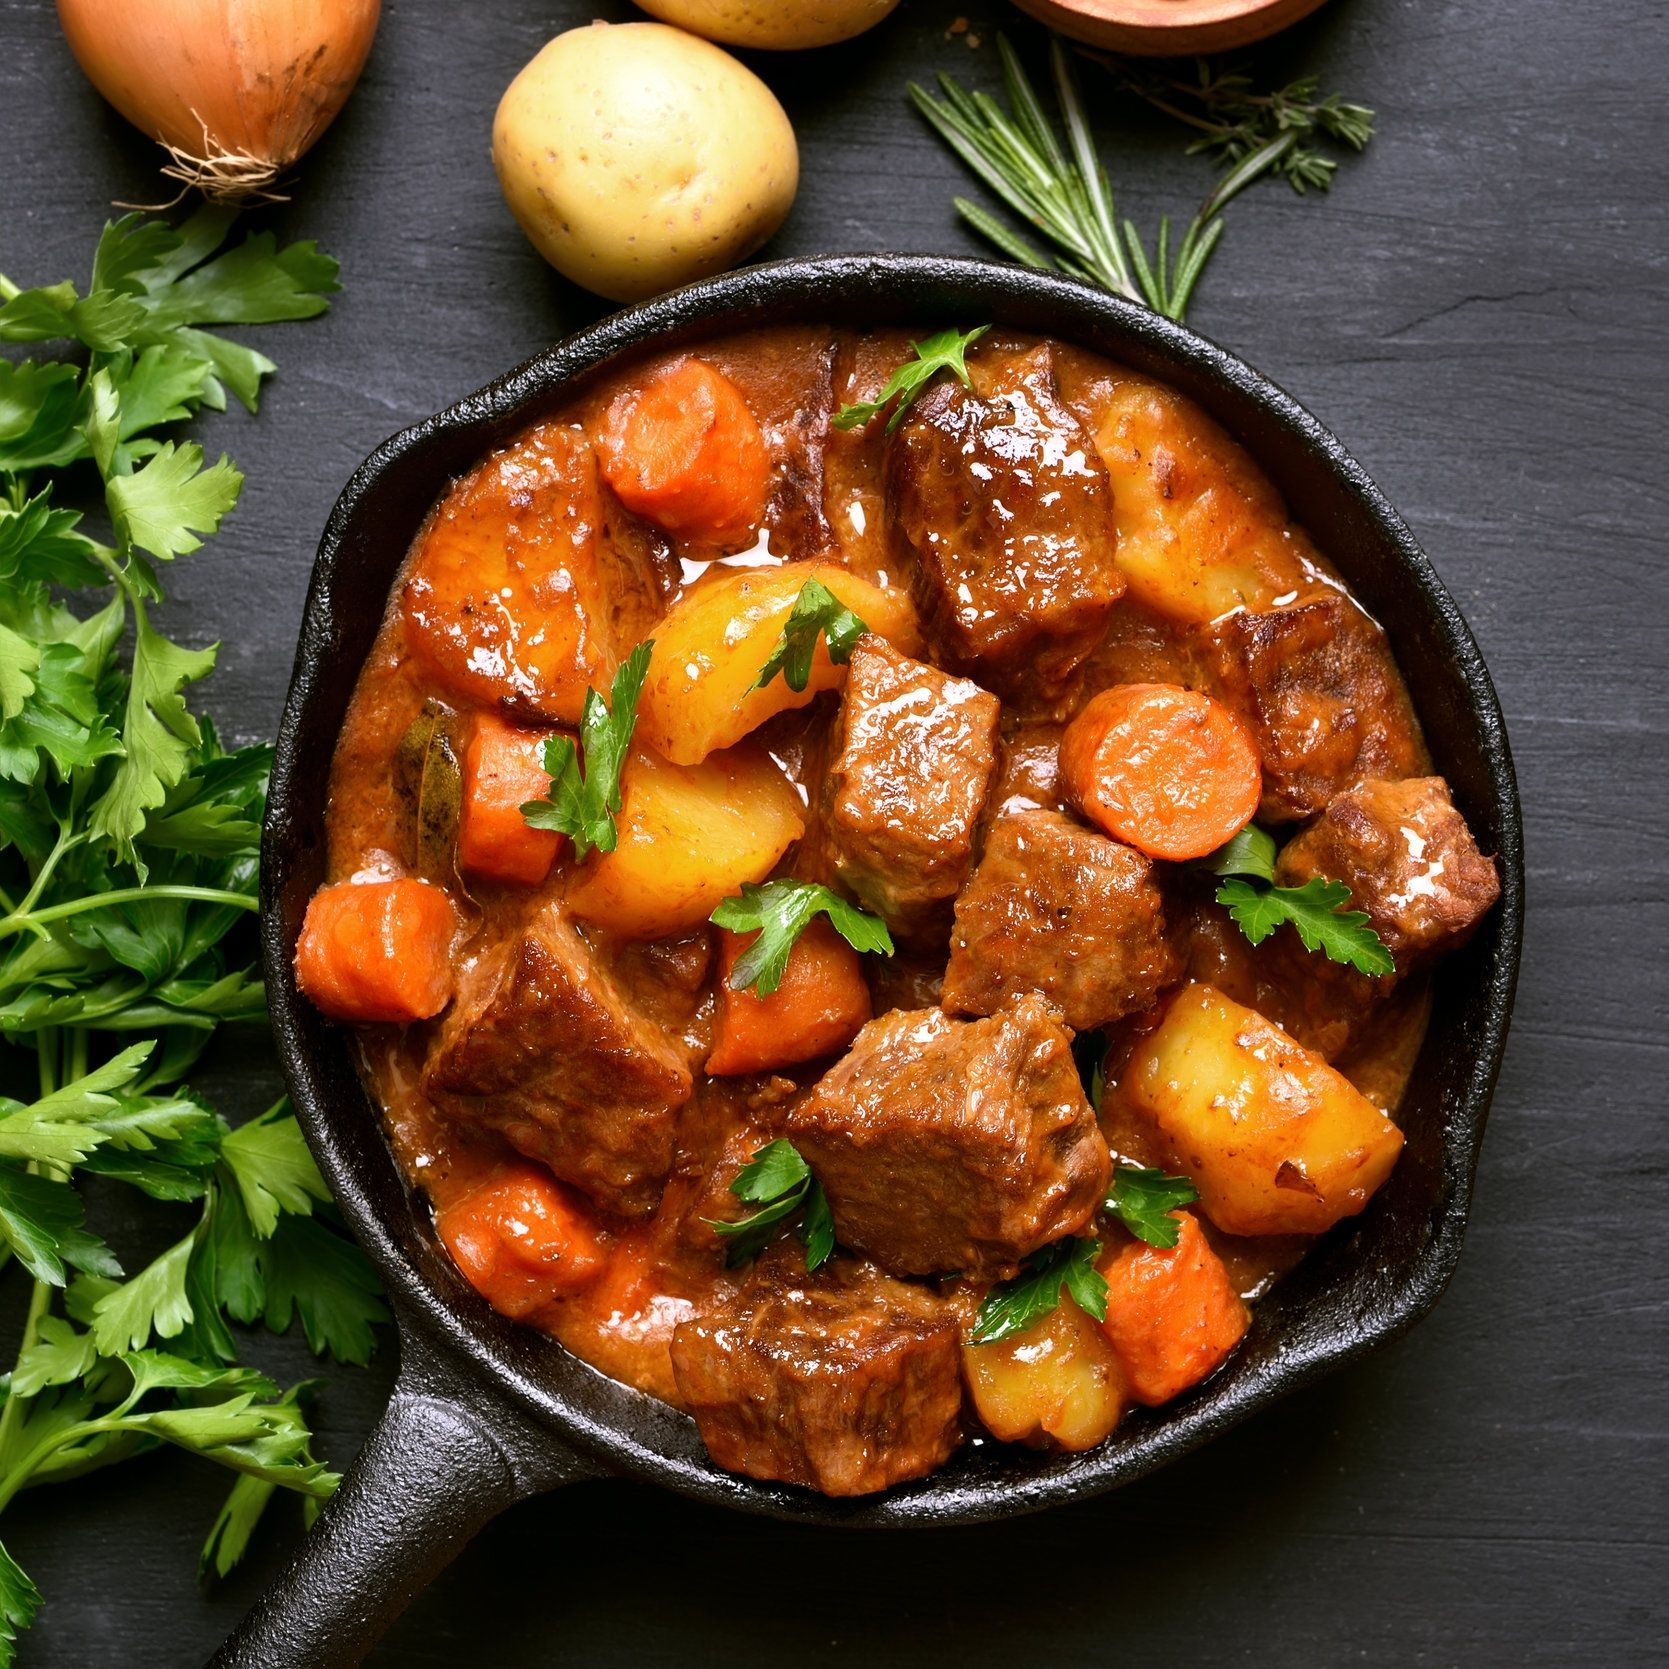 Ozark Stout Ale Mustard Beef Stew Classic Beef Stew Recipe Beef Stew Recipe Stew Recipes